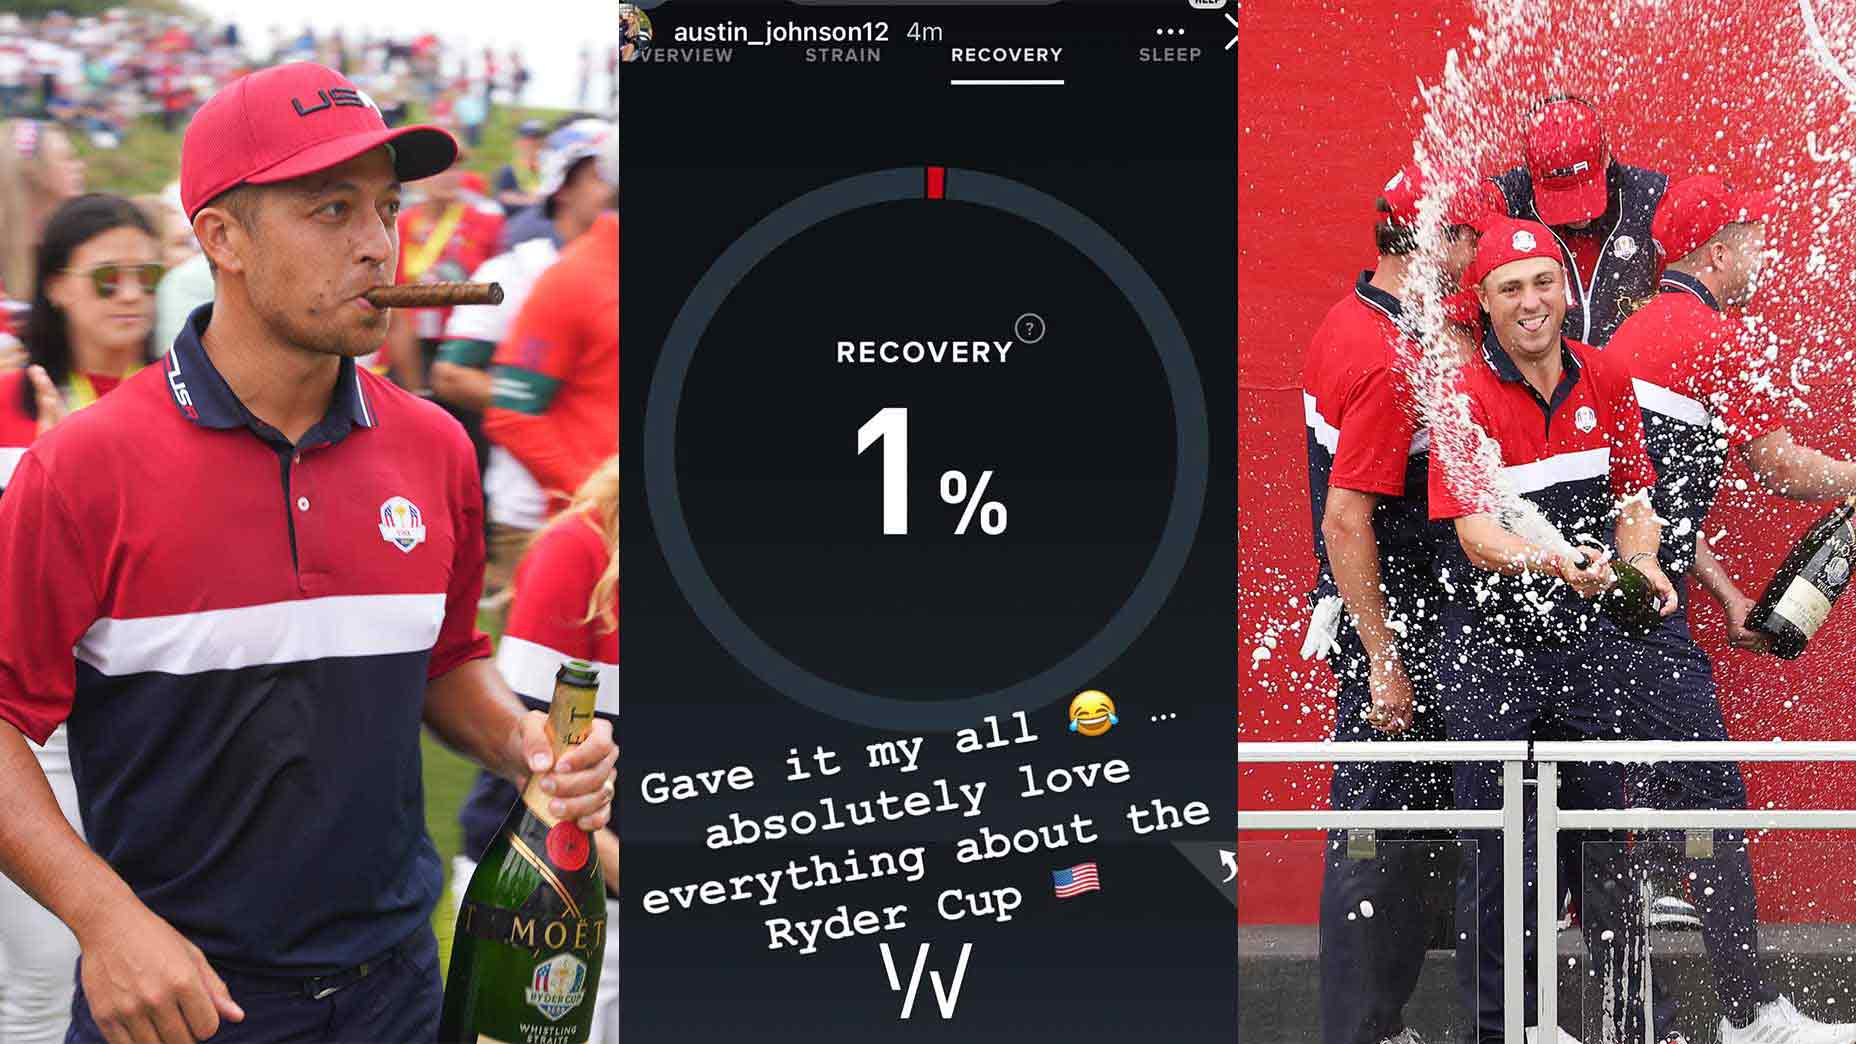 Austin Johnson's Whoop data reveals just how hard Team USA celebrated their Ryder Cup win.